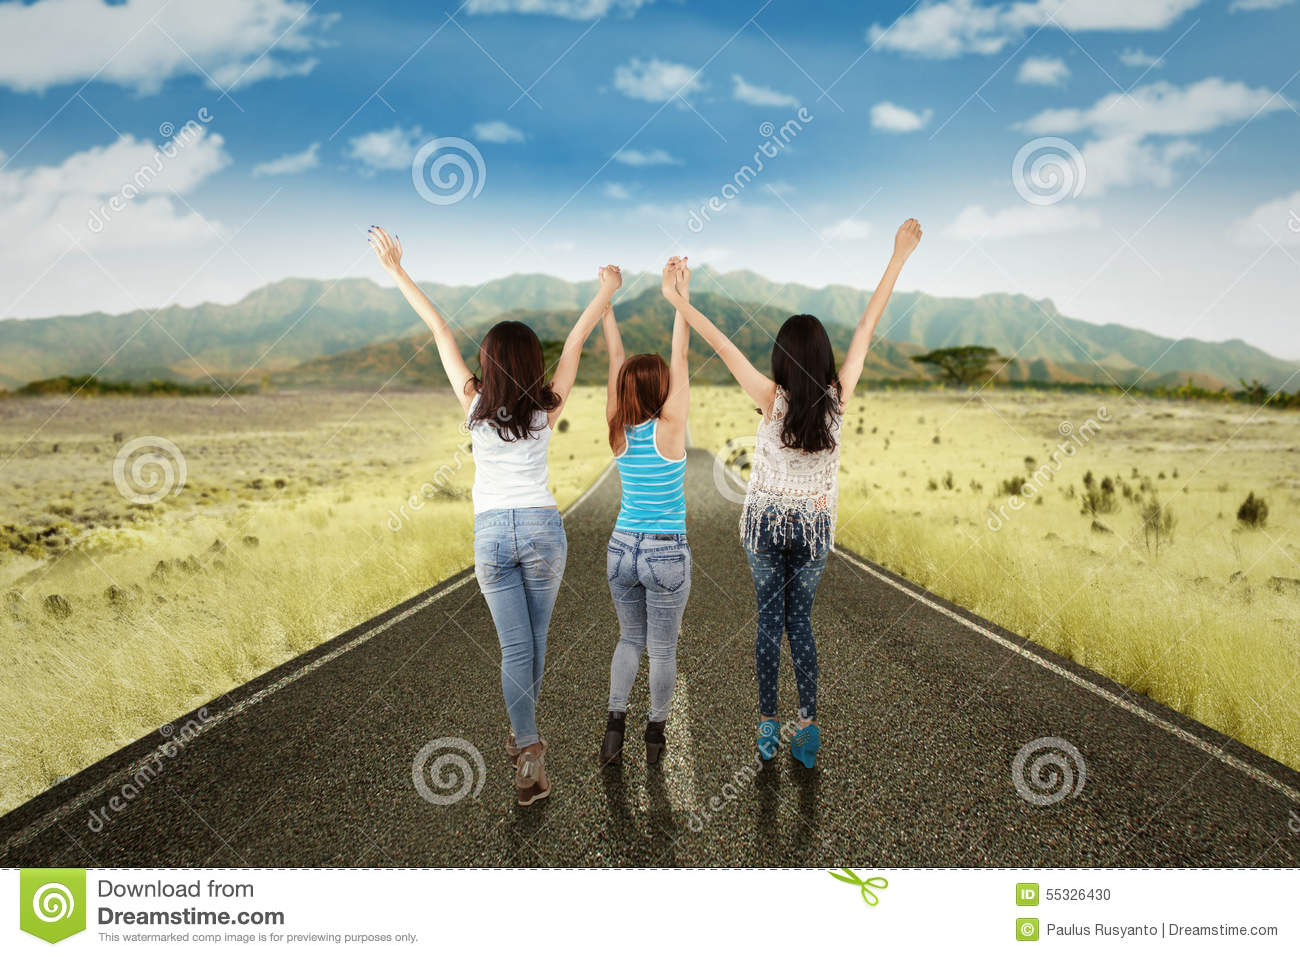 Girls Enjoy Freedom On The Countryside Road Stock Photo